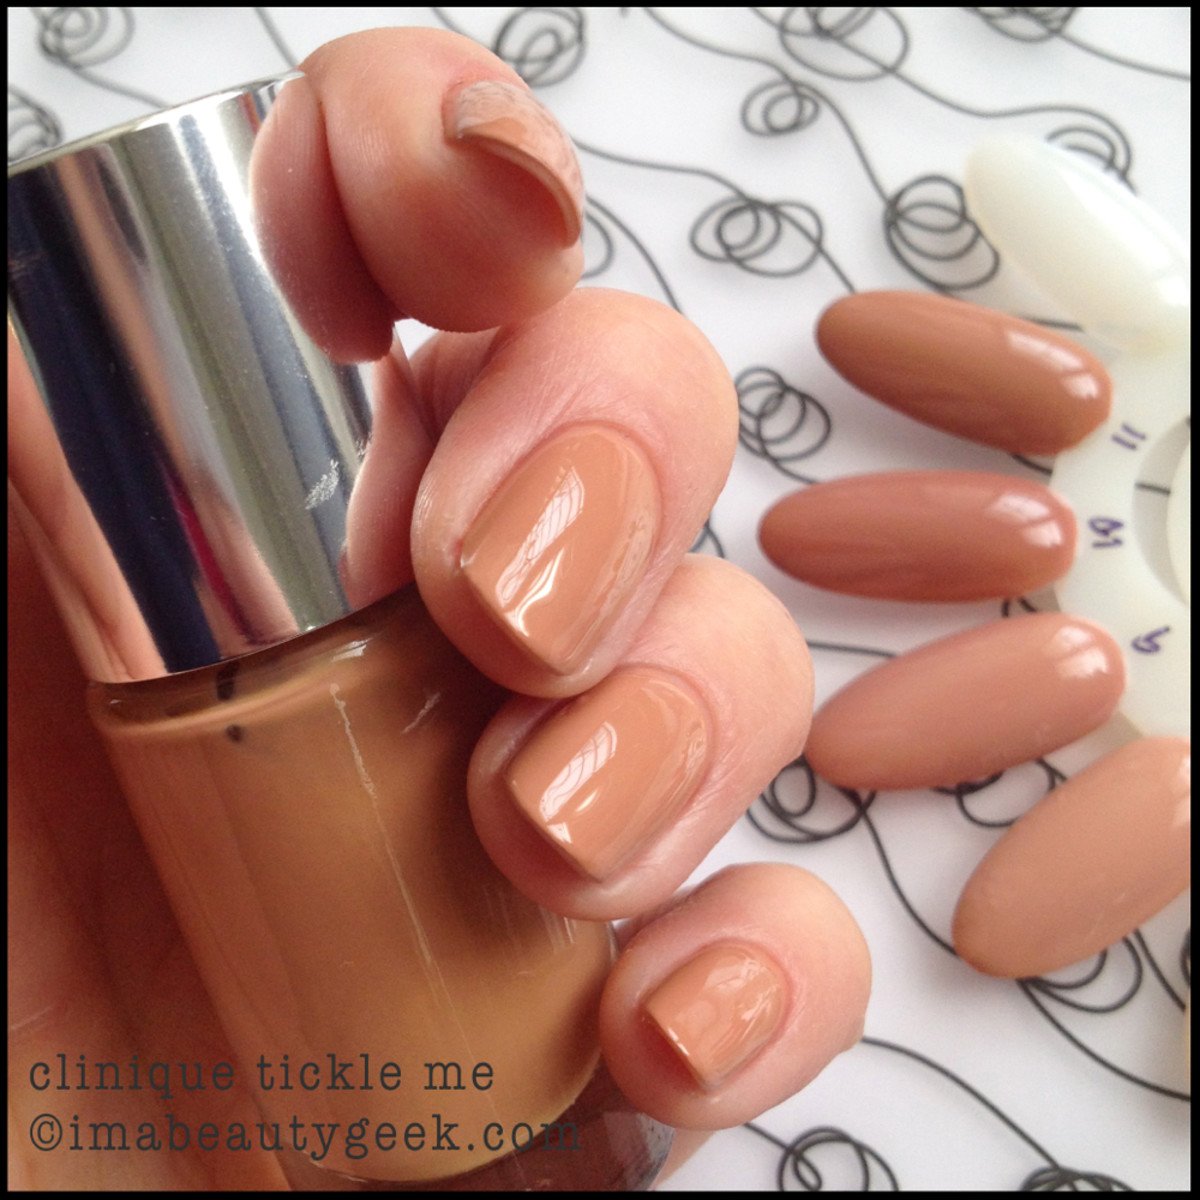 Clinique Nail Polish Nude Tickle Me